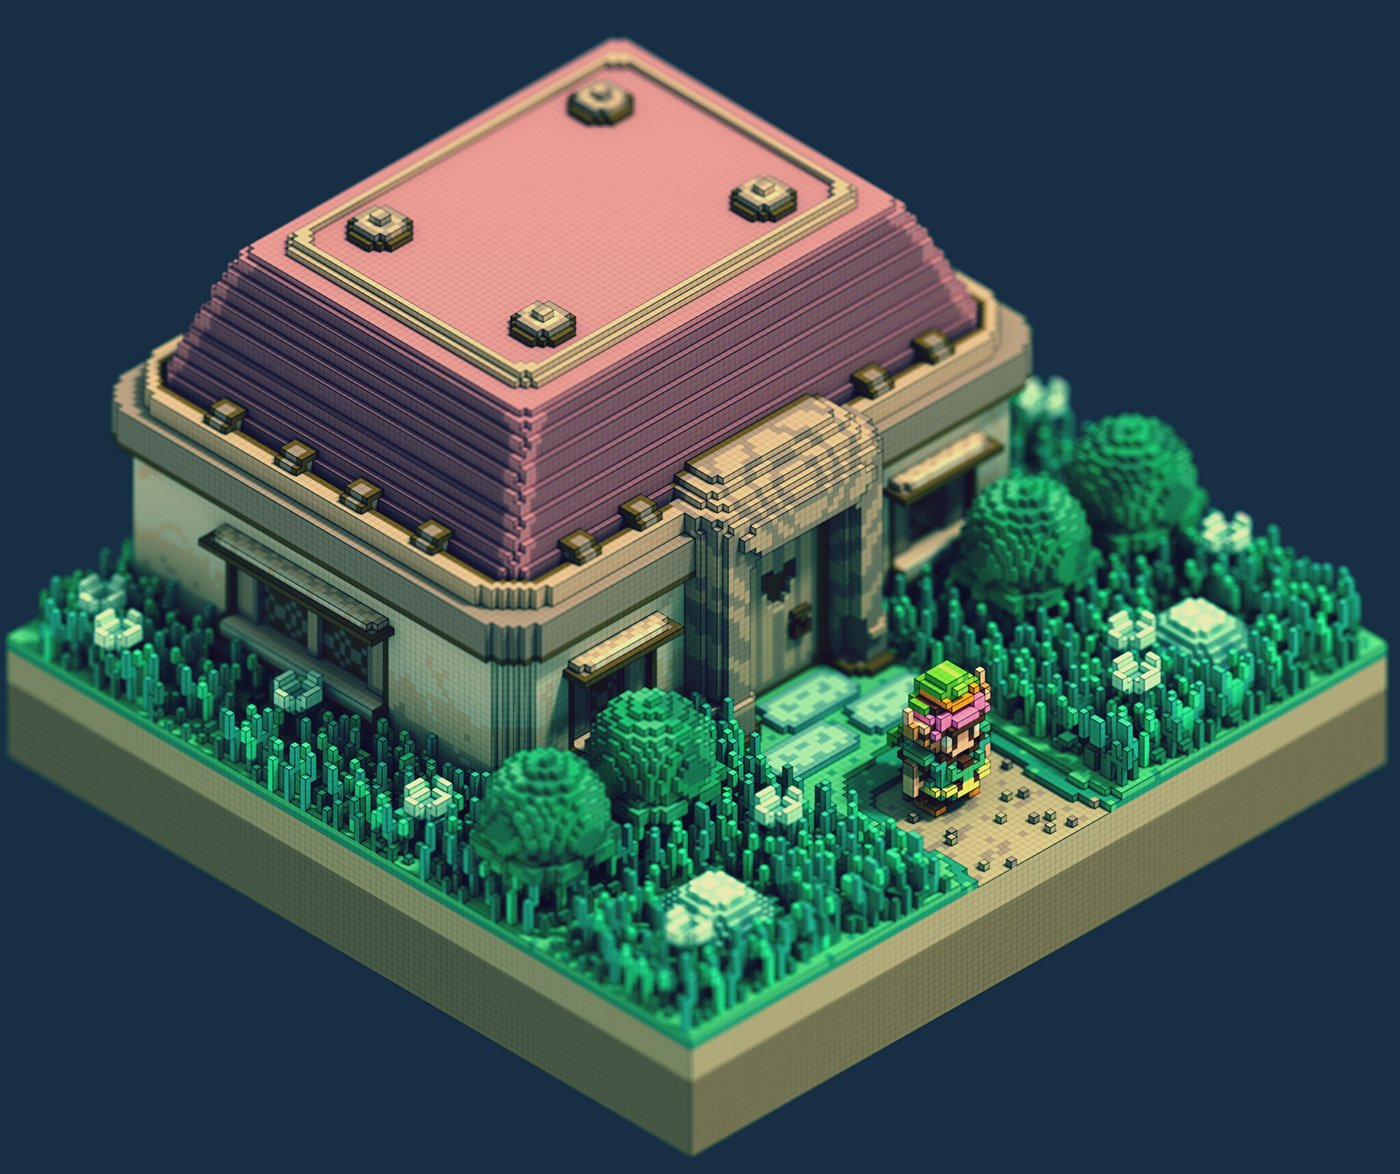 Modojo | These Voxel Legend of Zelda Images Makes Us Want a Remake of A Link to the Past